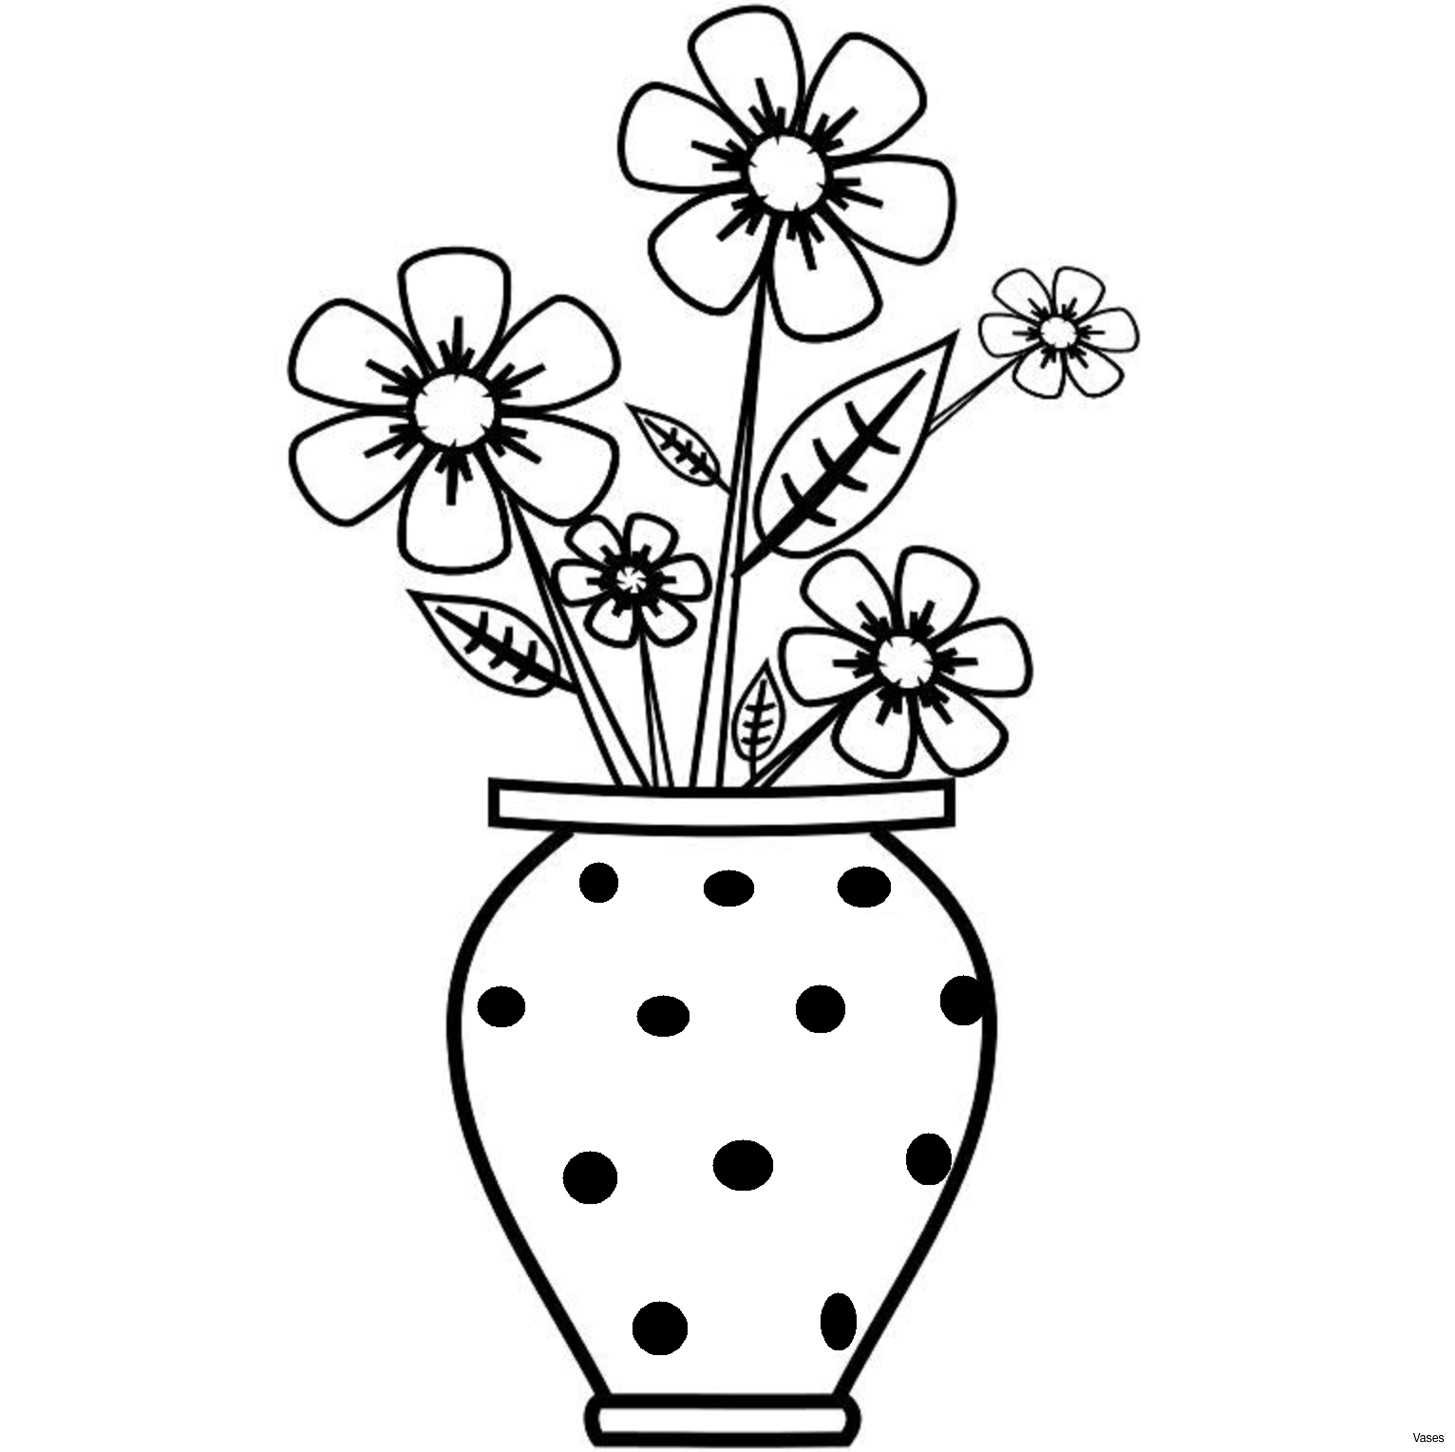 10 Trendy White Vase with Holes